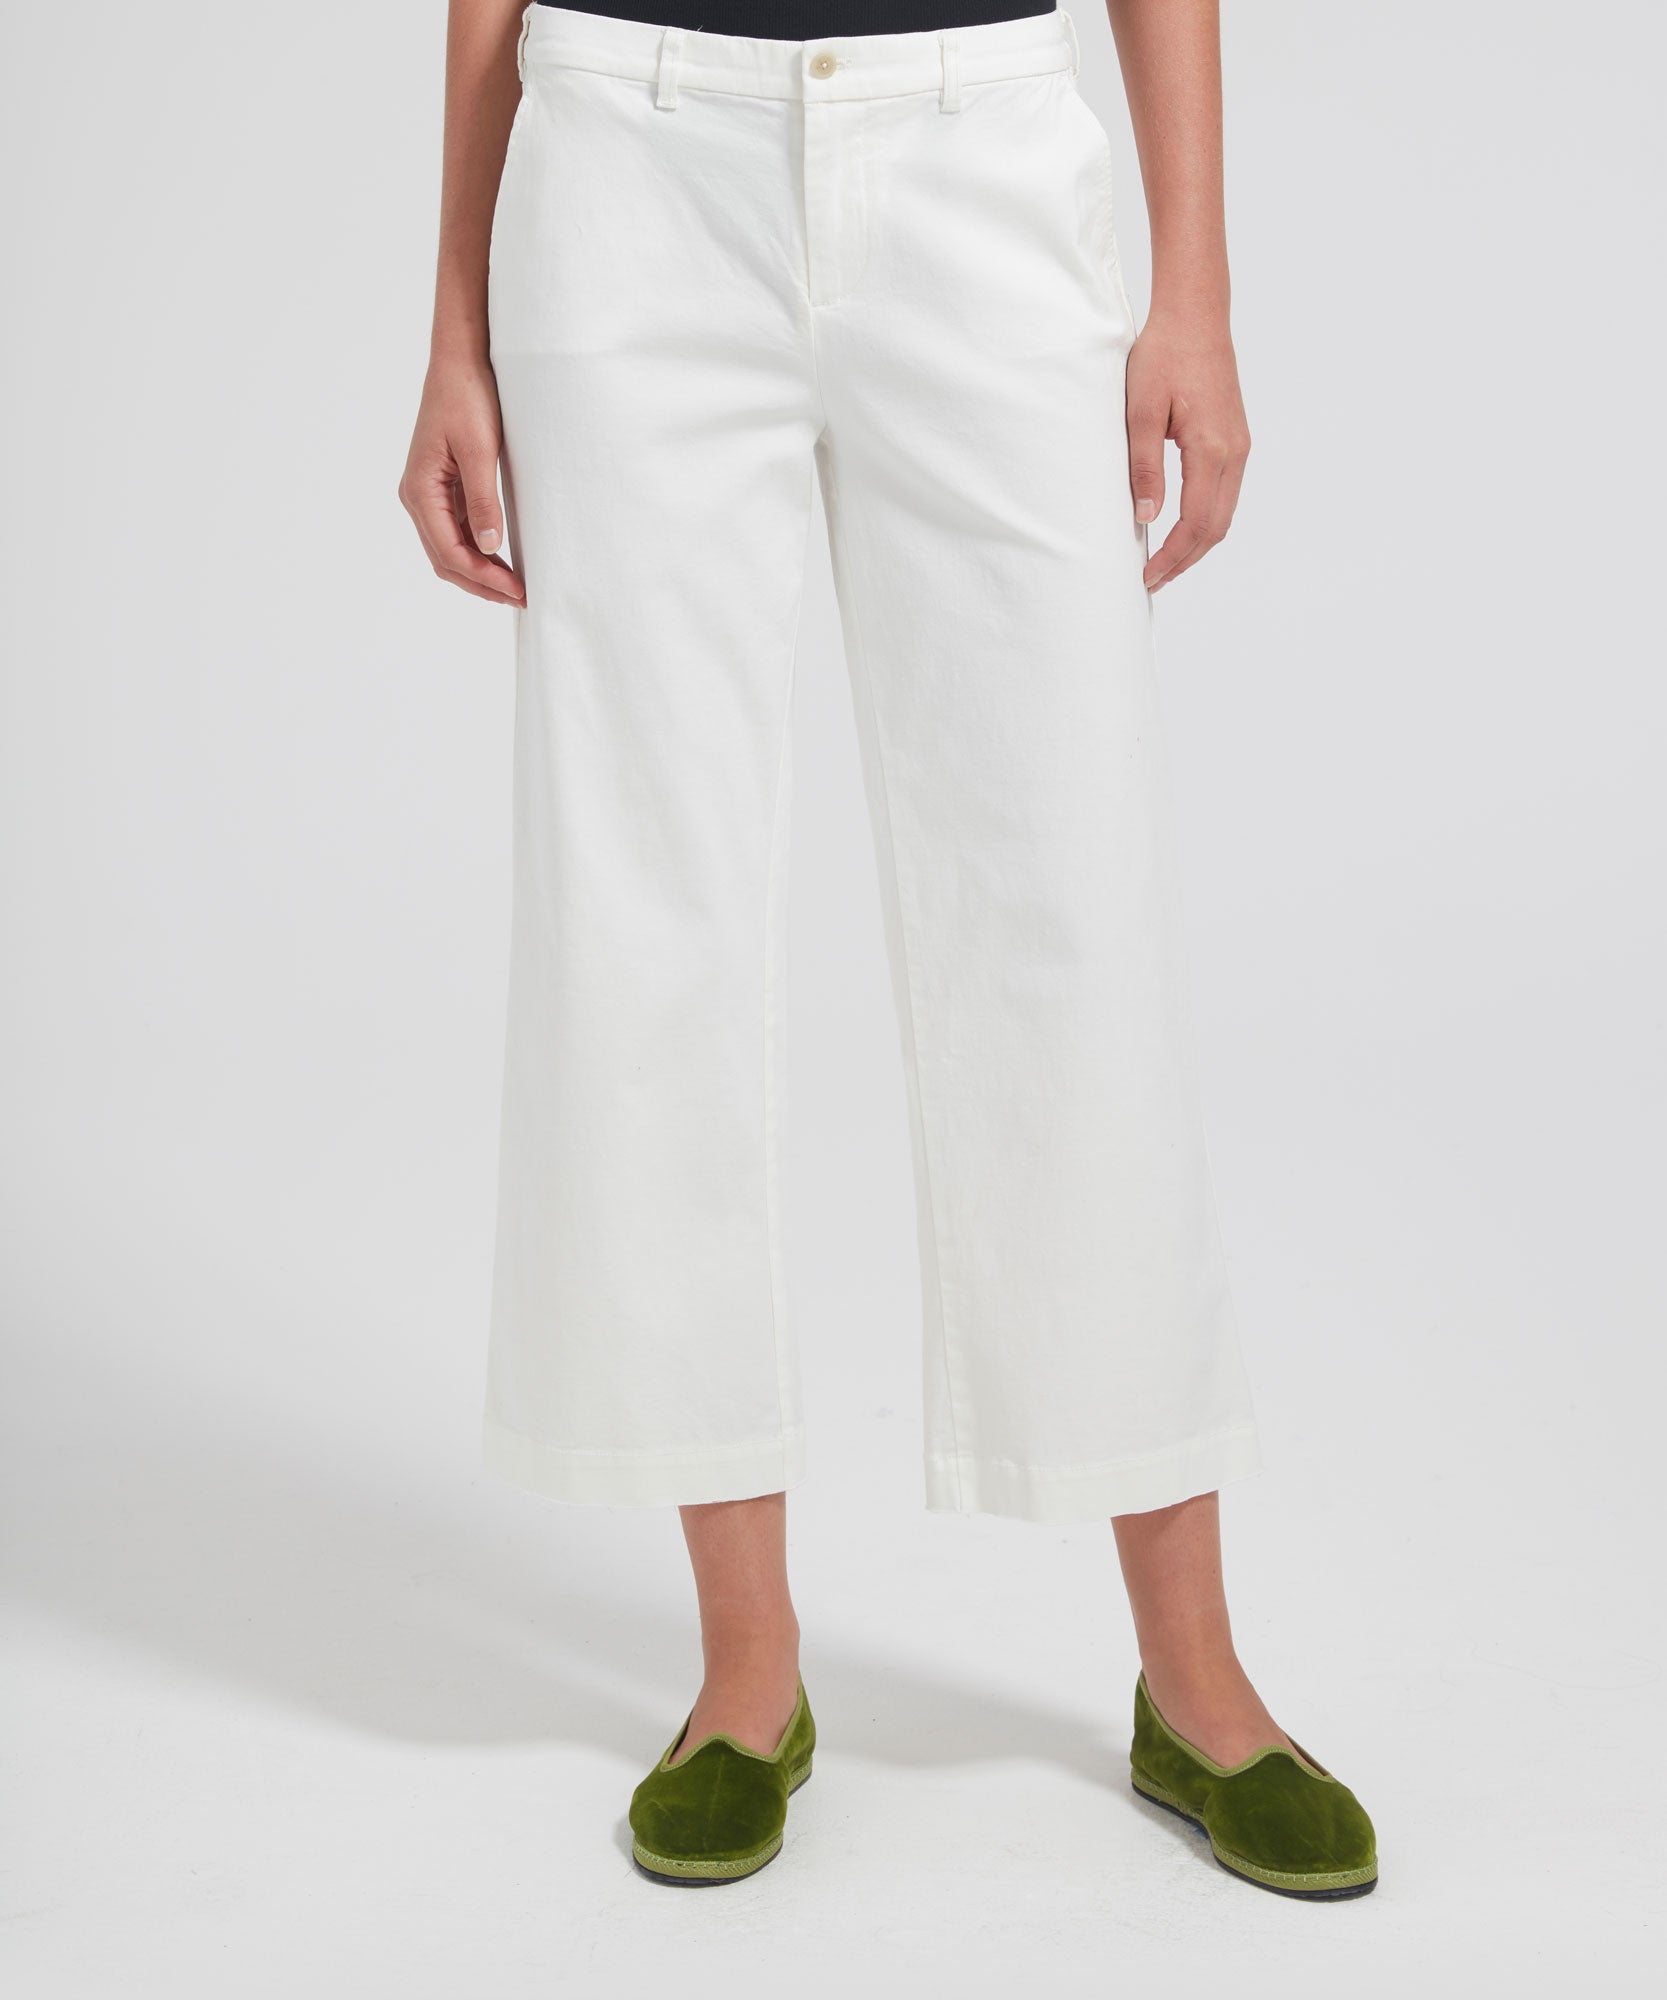 White Cropped Boyfriend Garment Wash Pants - Women's Casual Pants by ATM Anthony Thomas Melillo